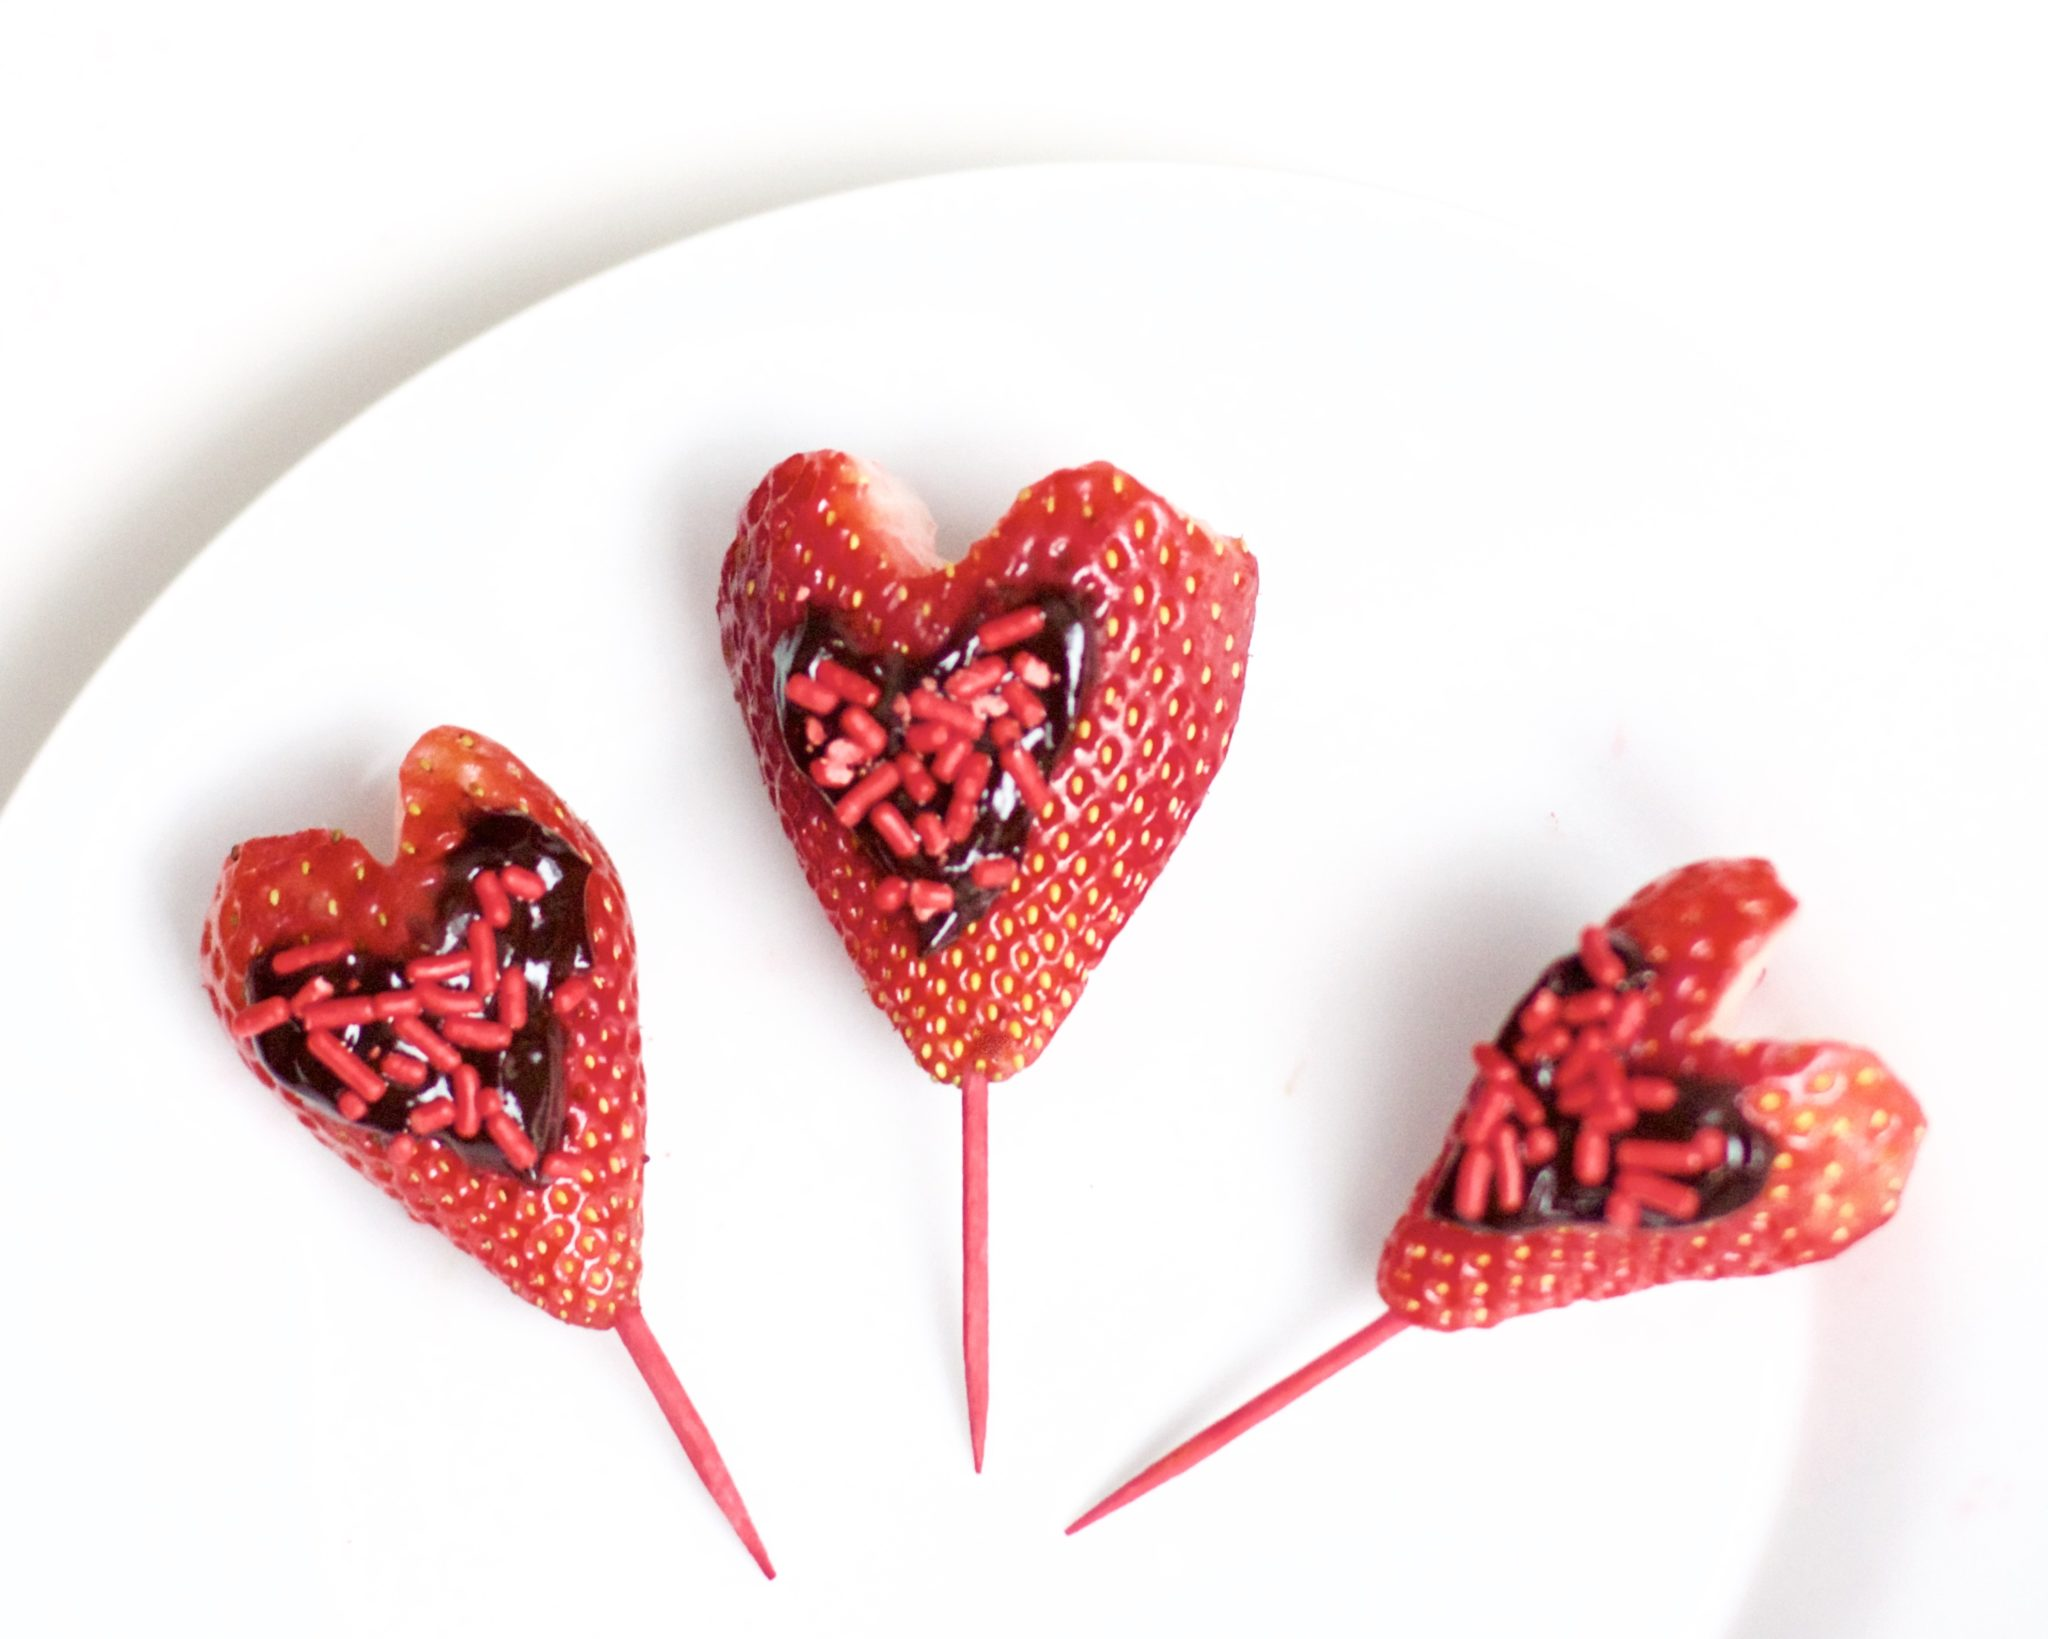 Chocolate Strawberry Valentine's Day Hearts (Vegan, Gluten-Free)